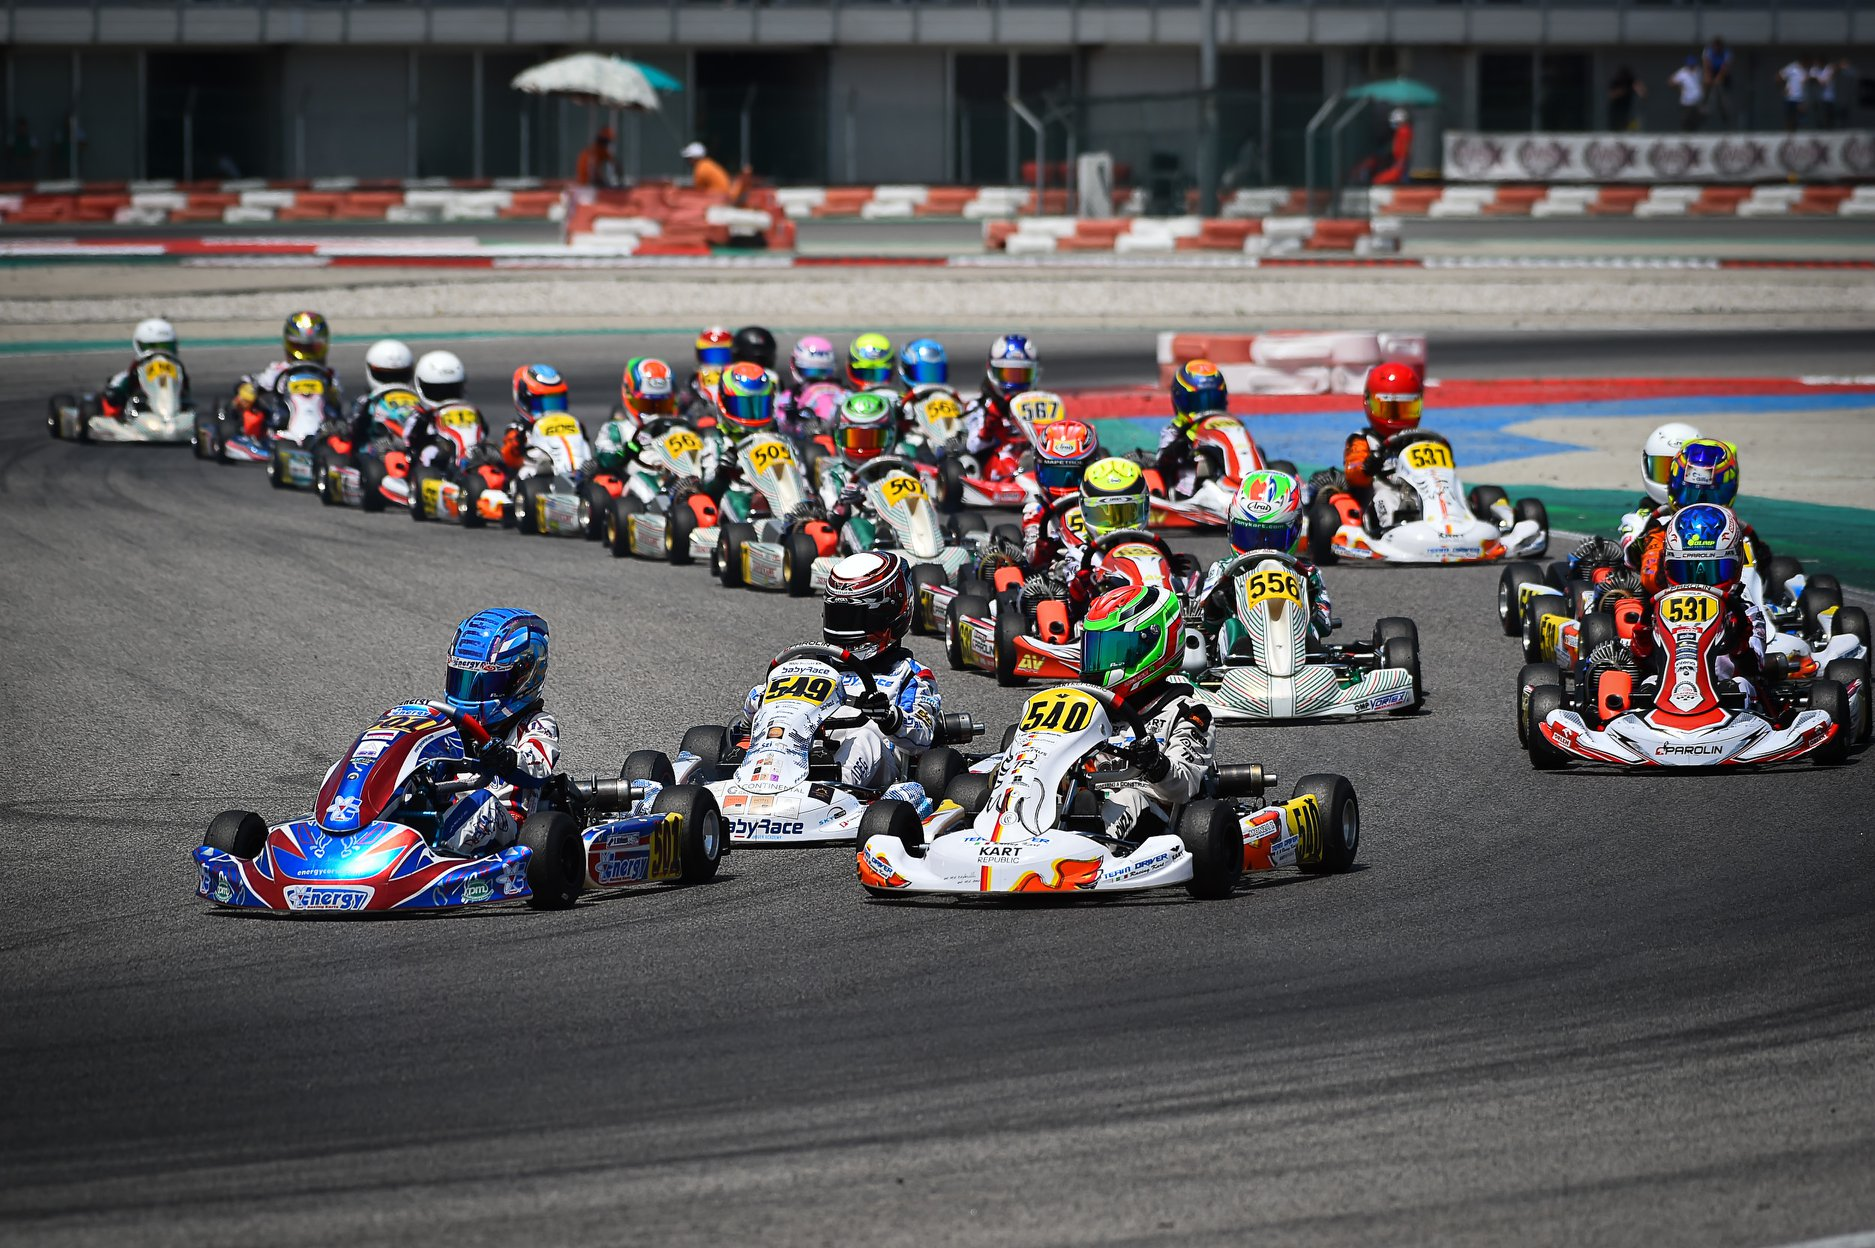 WSK Super Master Series - Finals round 3